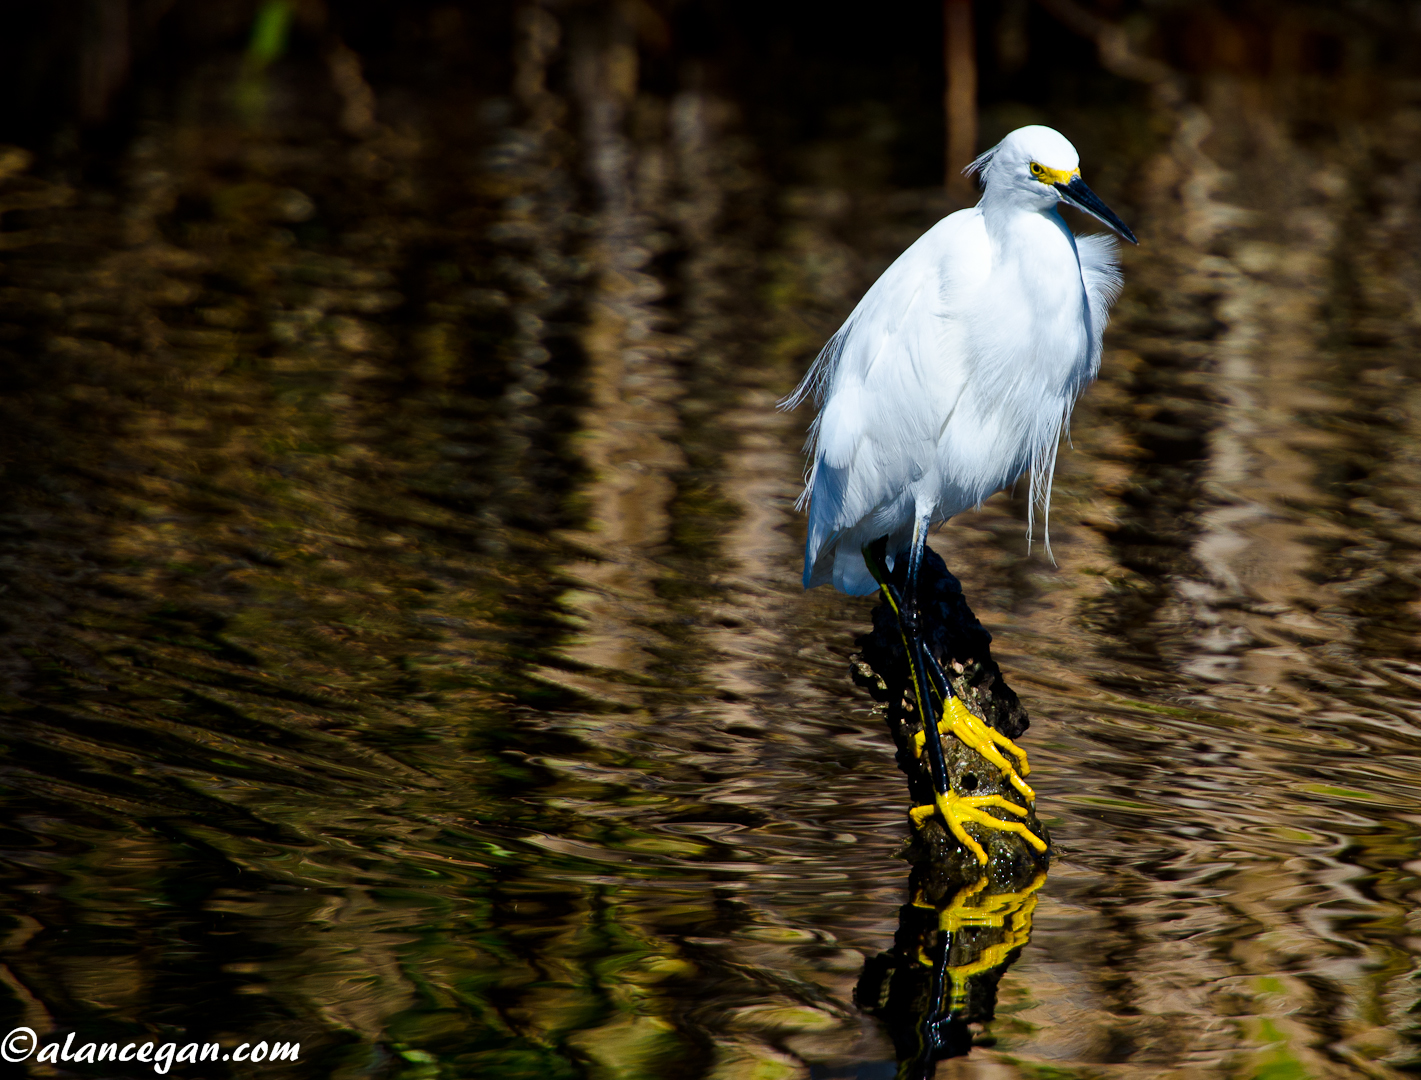 Photograph of a Perched Snowy Egret